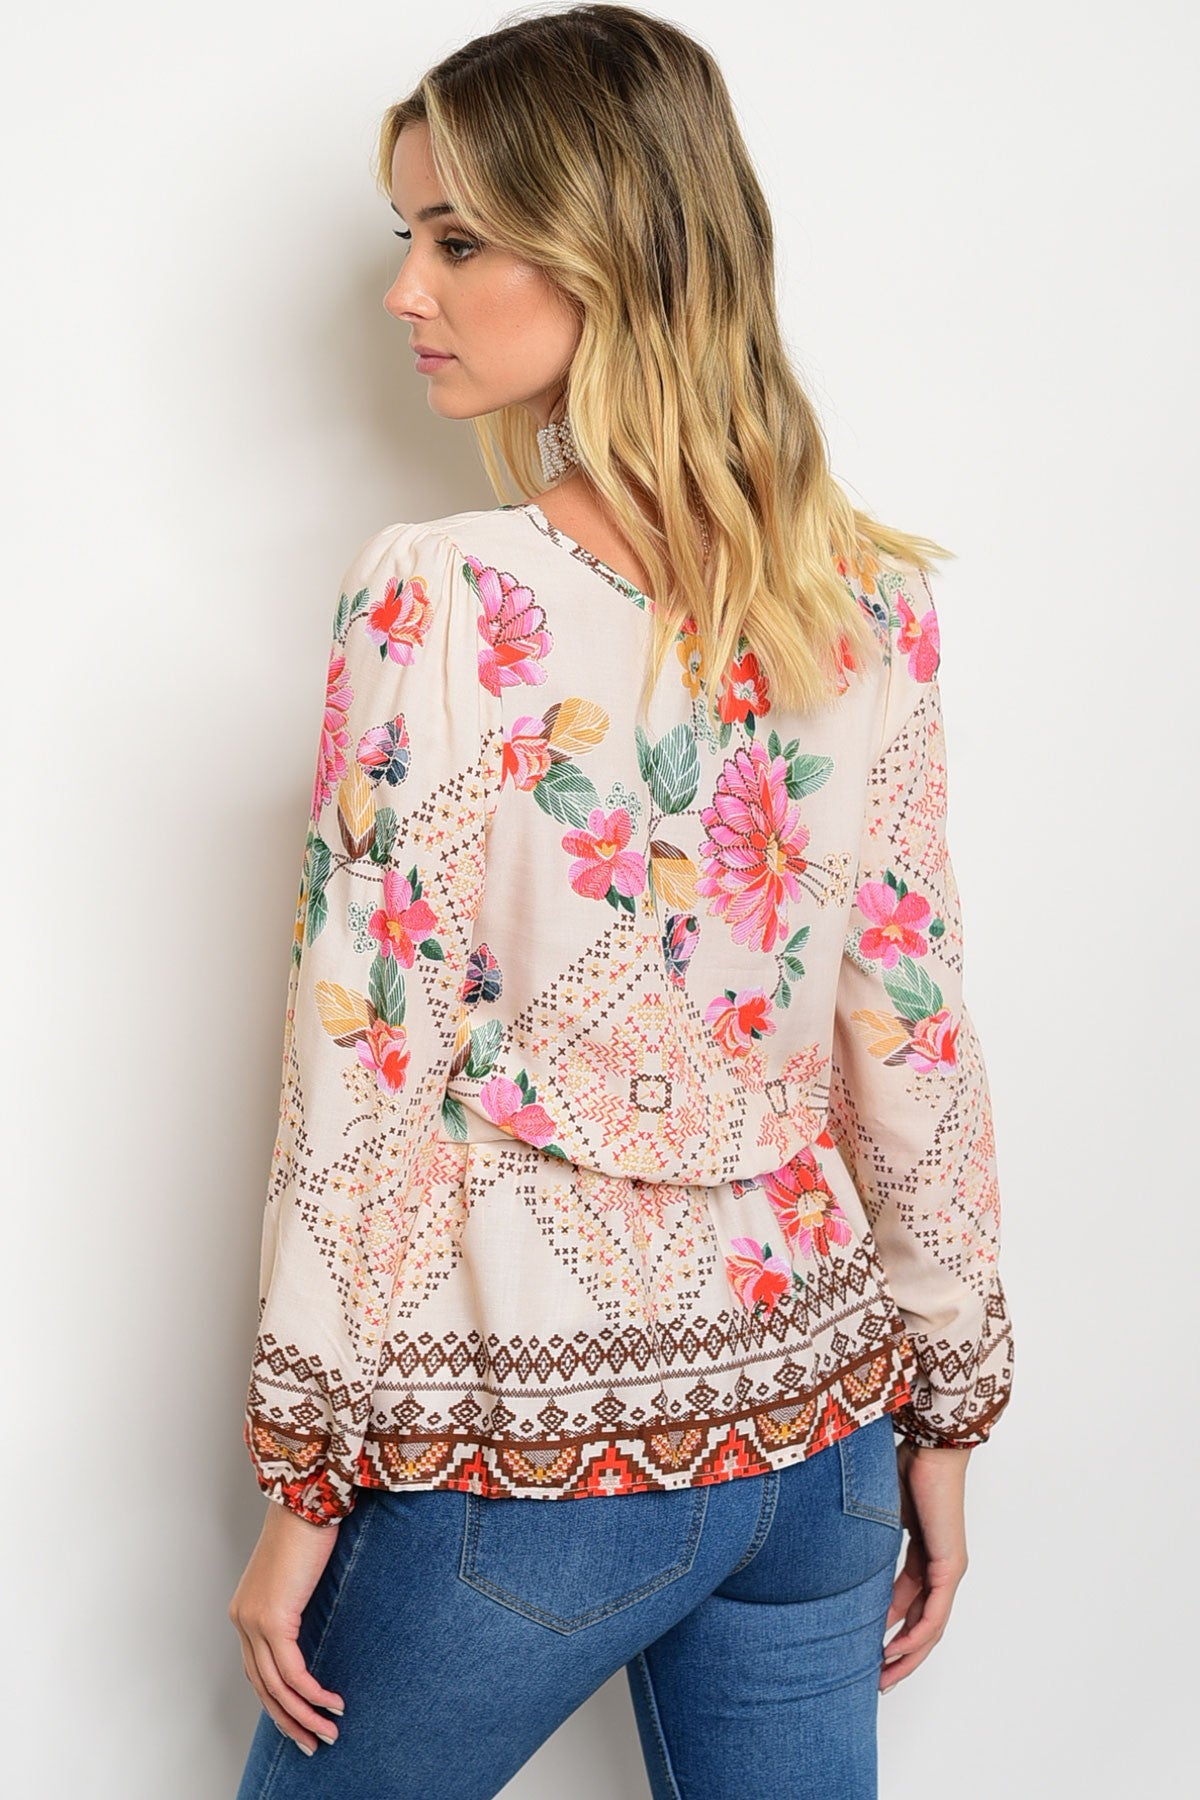 Lilly of the Valley Blouse